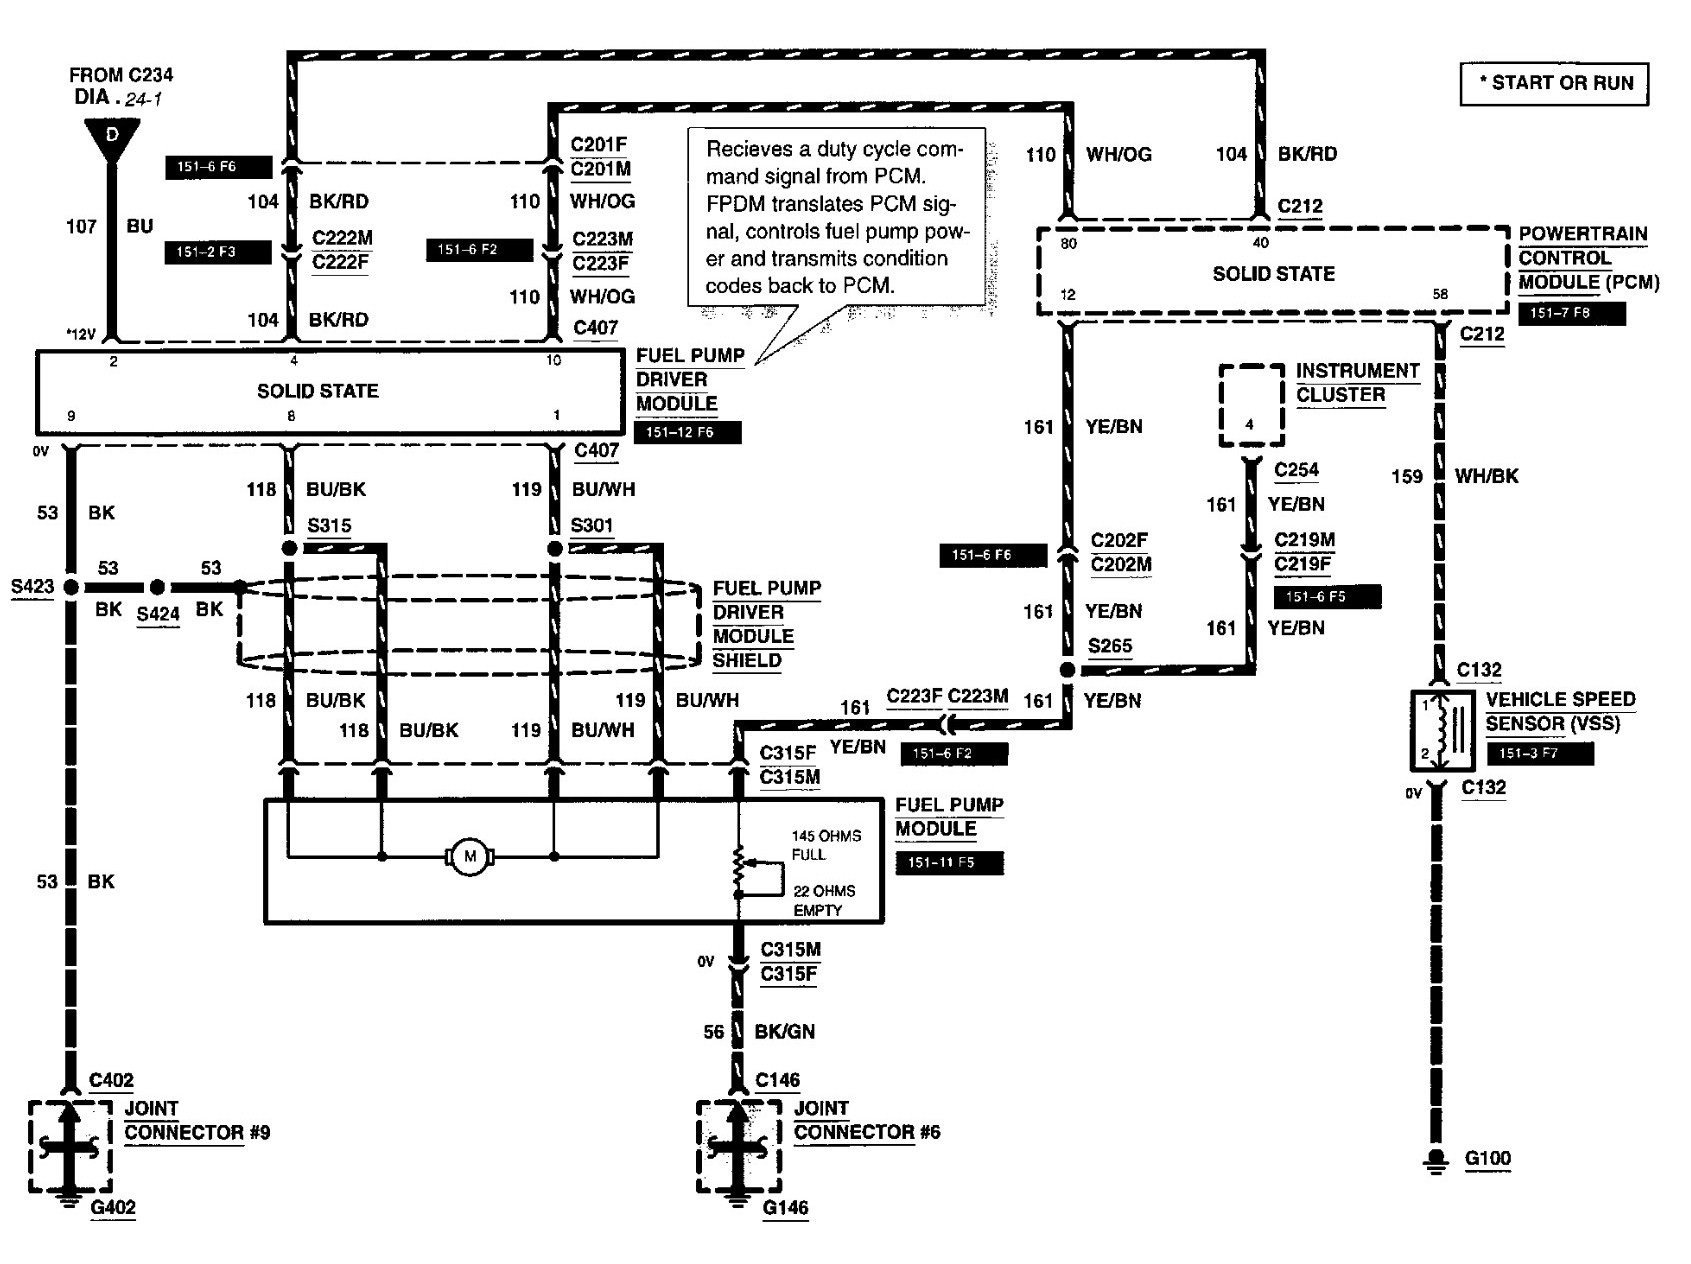 1998 ford Escort Zx2 Engine Diagram Category Wiring 0 Of 1998 ford Escort Zx2 Engine Diagram Category Wiring 0